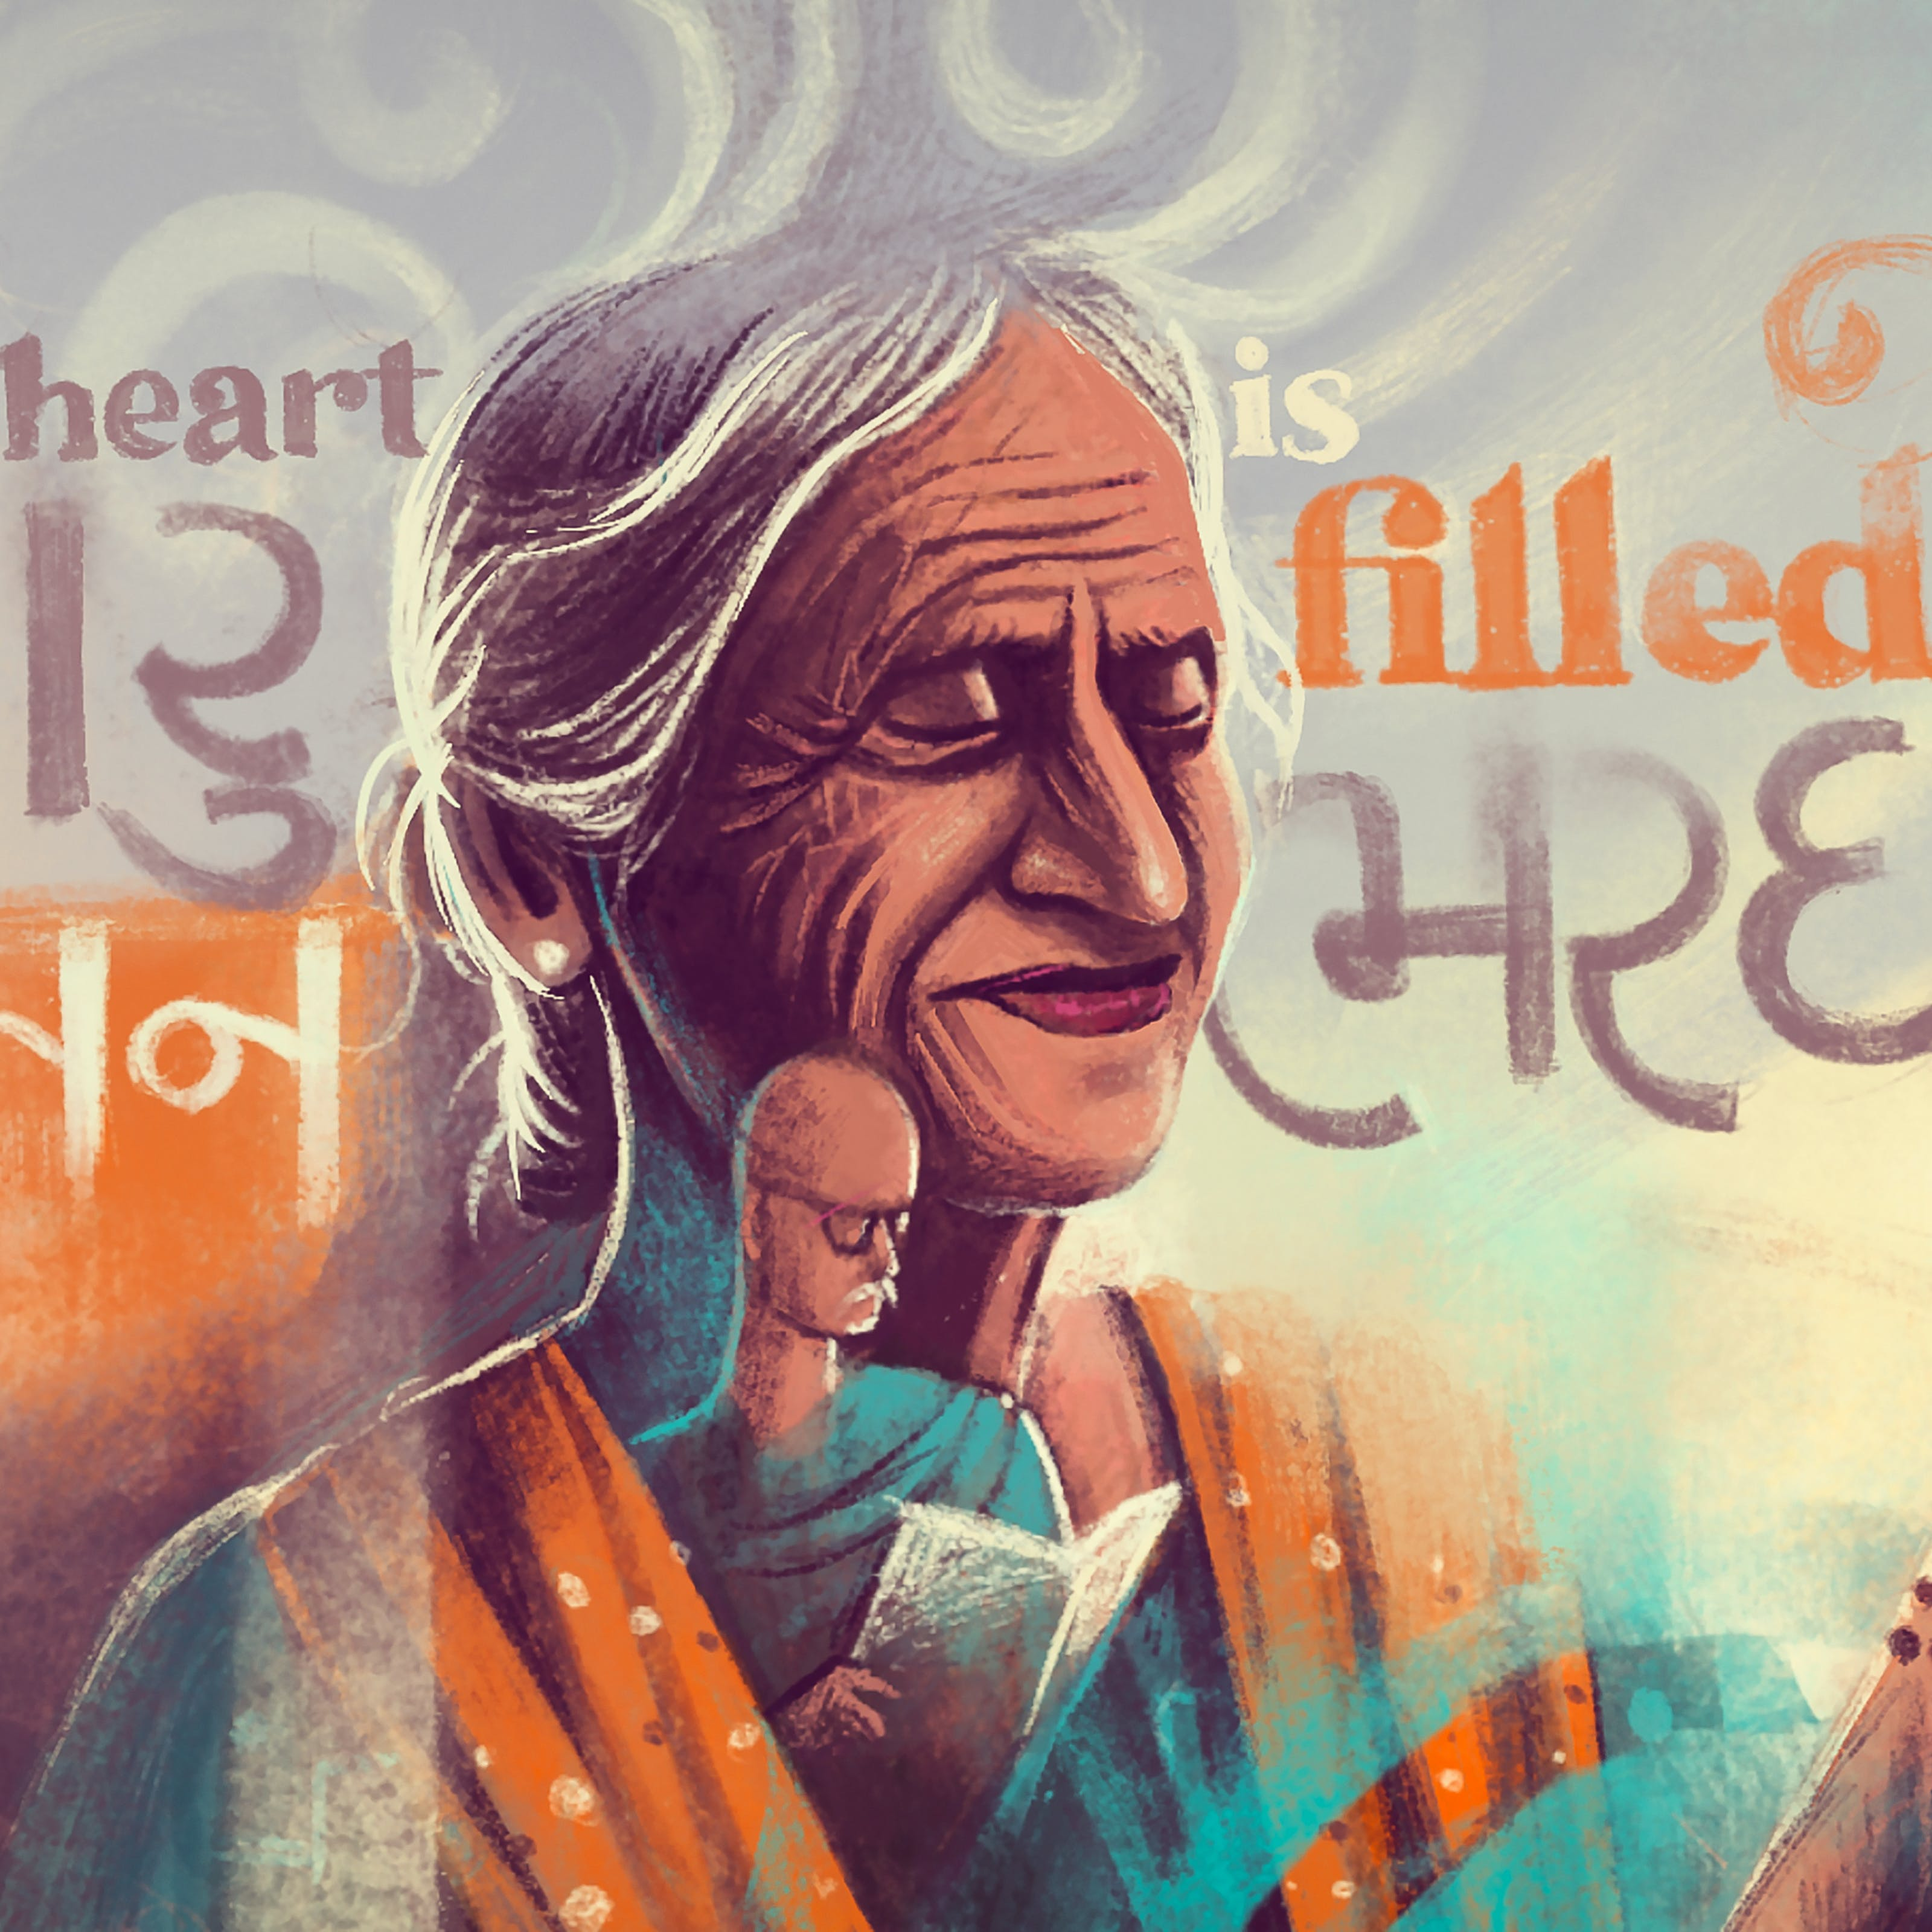 Digital artwork in the style of a pastel drawing using muted hues of blues, oranges and mauves. The drawing shows an older woman in the centre from the shoulders up. She has her eyes closed and a gentle smile on her face. Her long silver grey hair is tied behind her head. Her left hand is raised up and a beaded necklace flows through her fingers and around her wrist. She is wearing an orange shawl over her shoulders. Behind her in a swirling cloud like backdrop are words written in Gujarati with a rough English translation, 'My heart is filled'. Overlaid in an abstract way a small male figures appears on top of her neck and chest, as if appearing from her shawl. The small figure is wearing glasses and has a white moustache. He is holding a large book or newspaper in his hands, which he is reading.